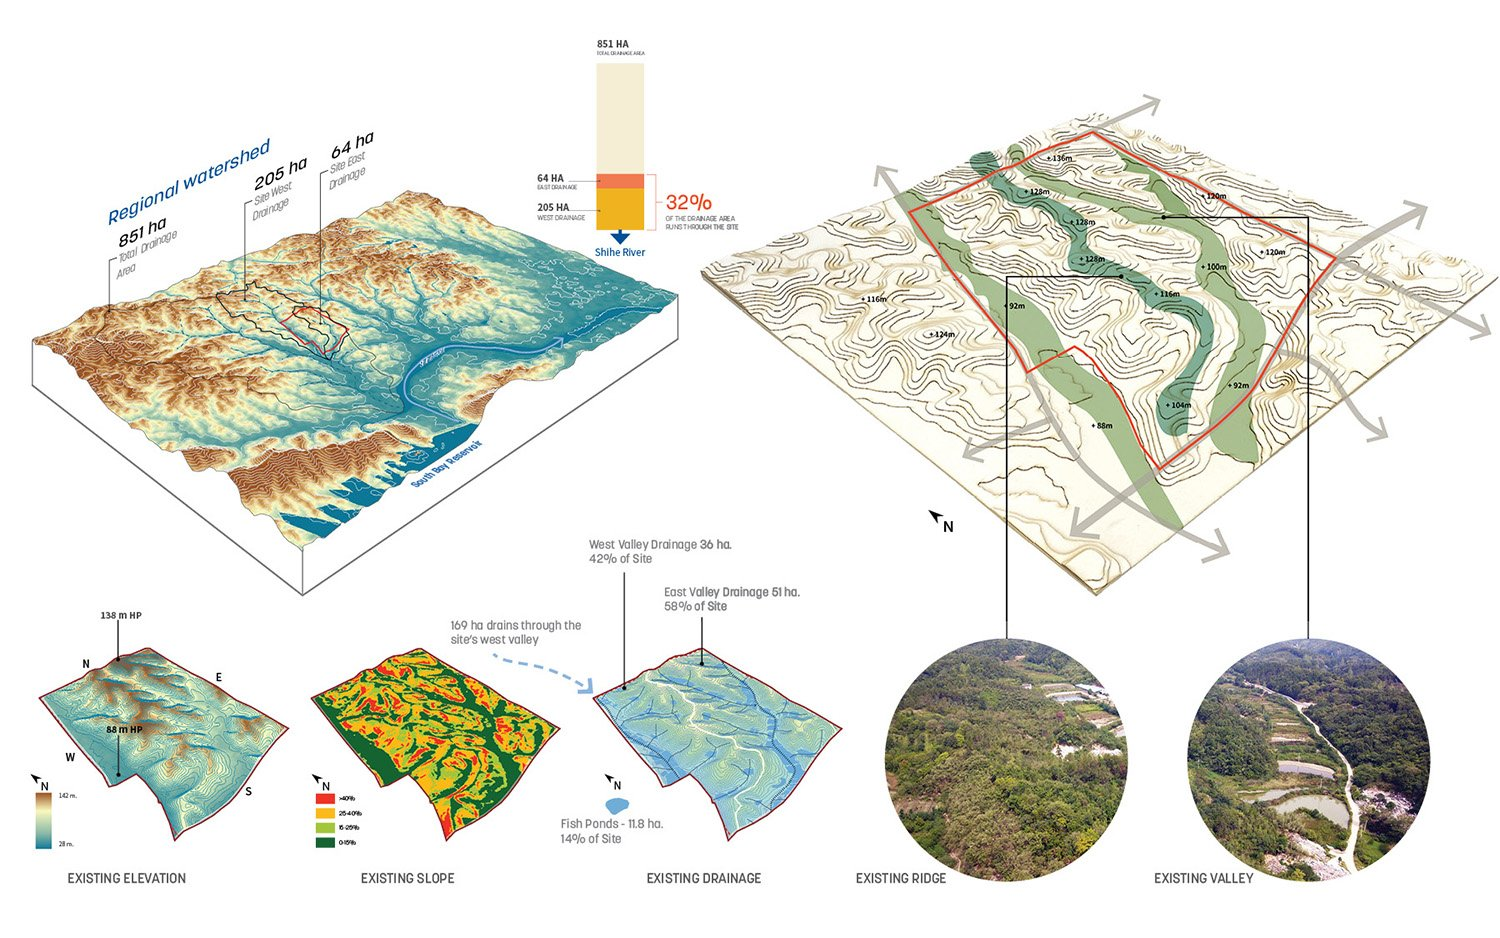 A thorough analysis of topography and regional hydrology provides the foundation of the campus masterplan. SASAKI}